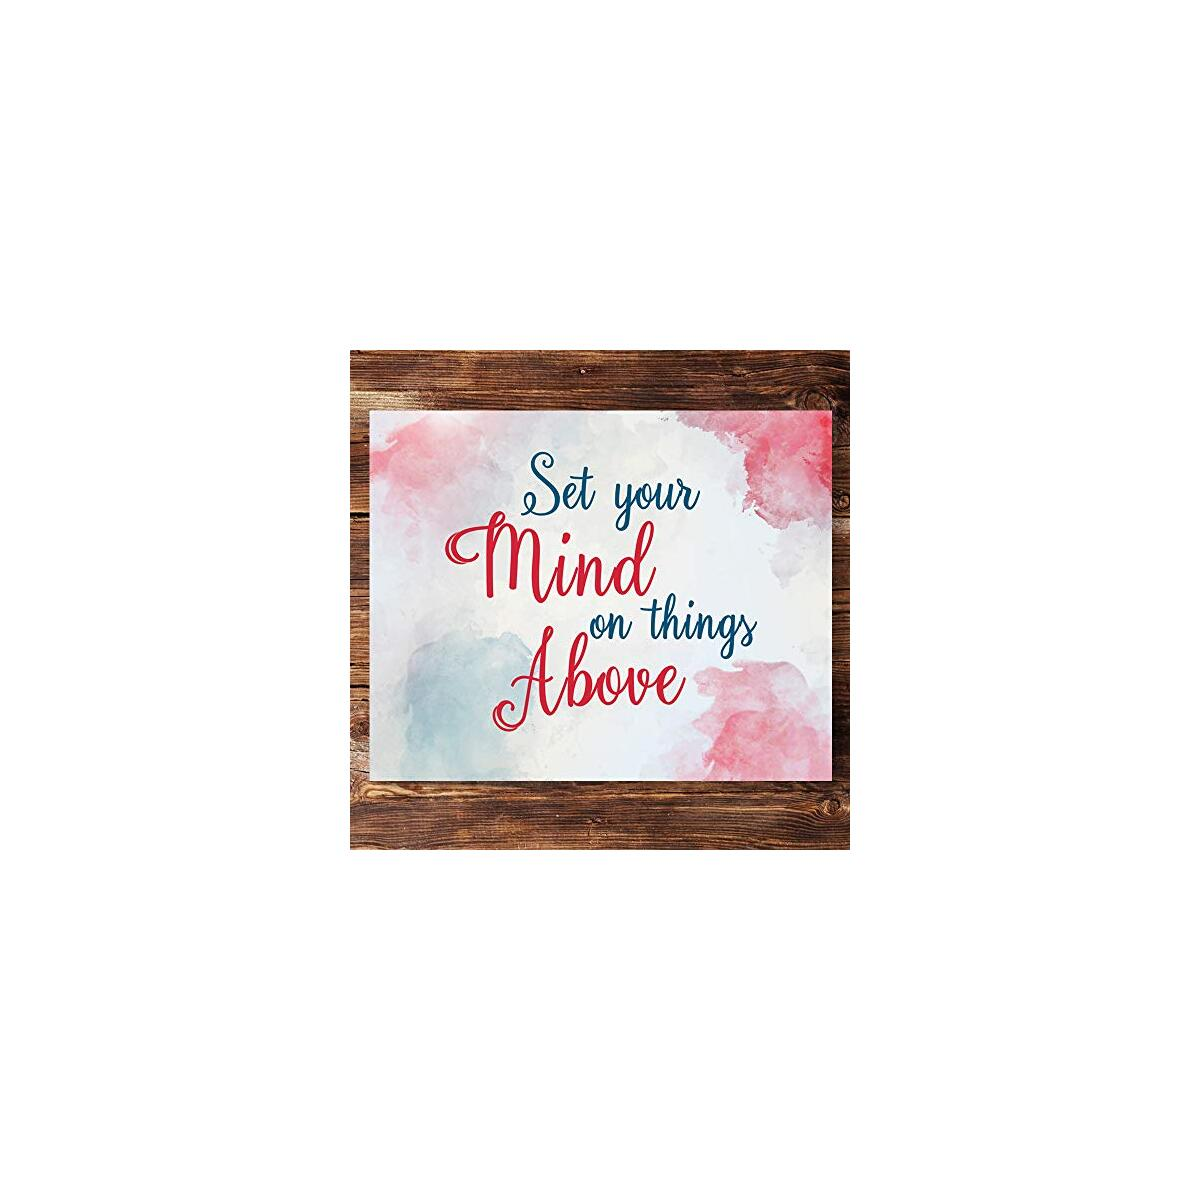 Set Your Mind On Things Above Wall Art Prints - Unframed 8x10 in - Motivational Posters for Office Decor - Positive Pics with Inspirational Quotes for Home